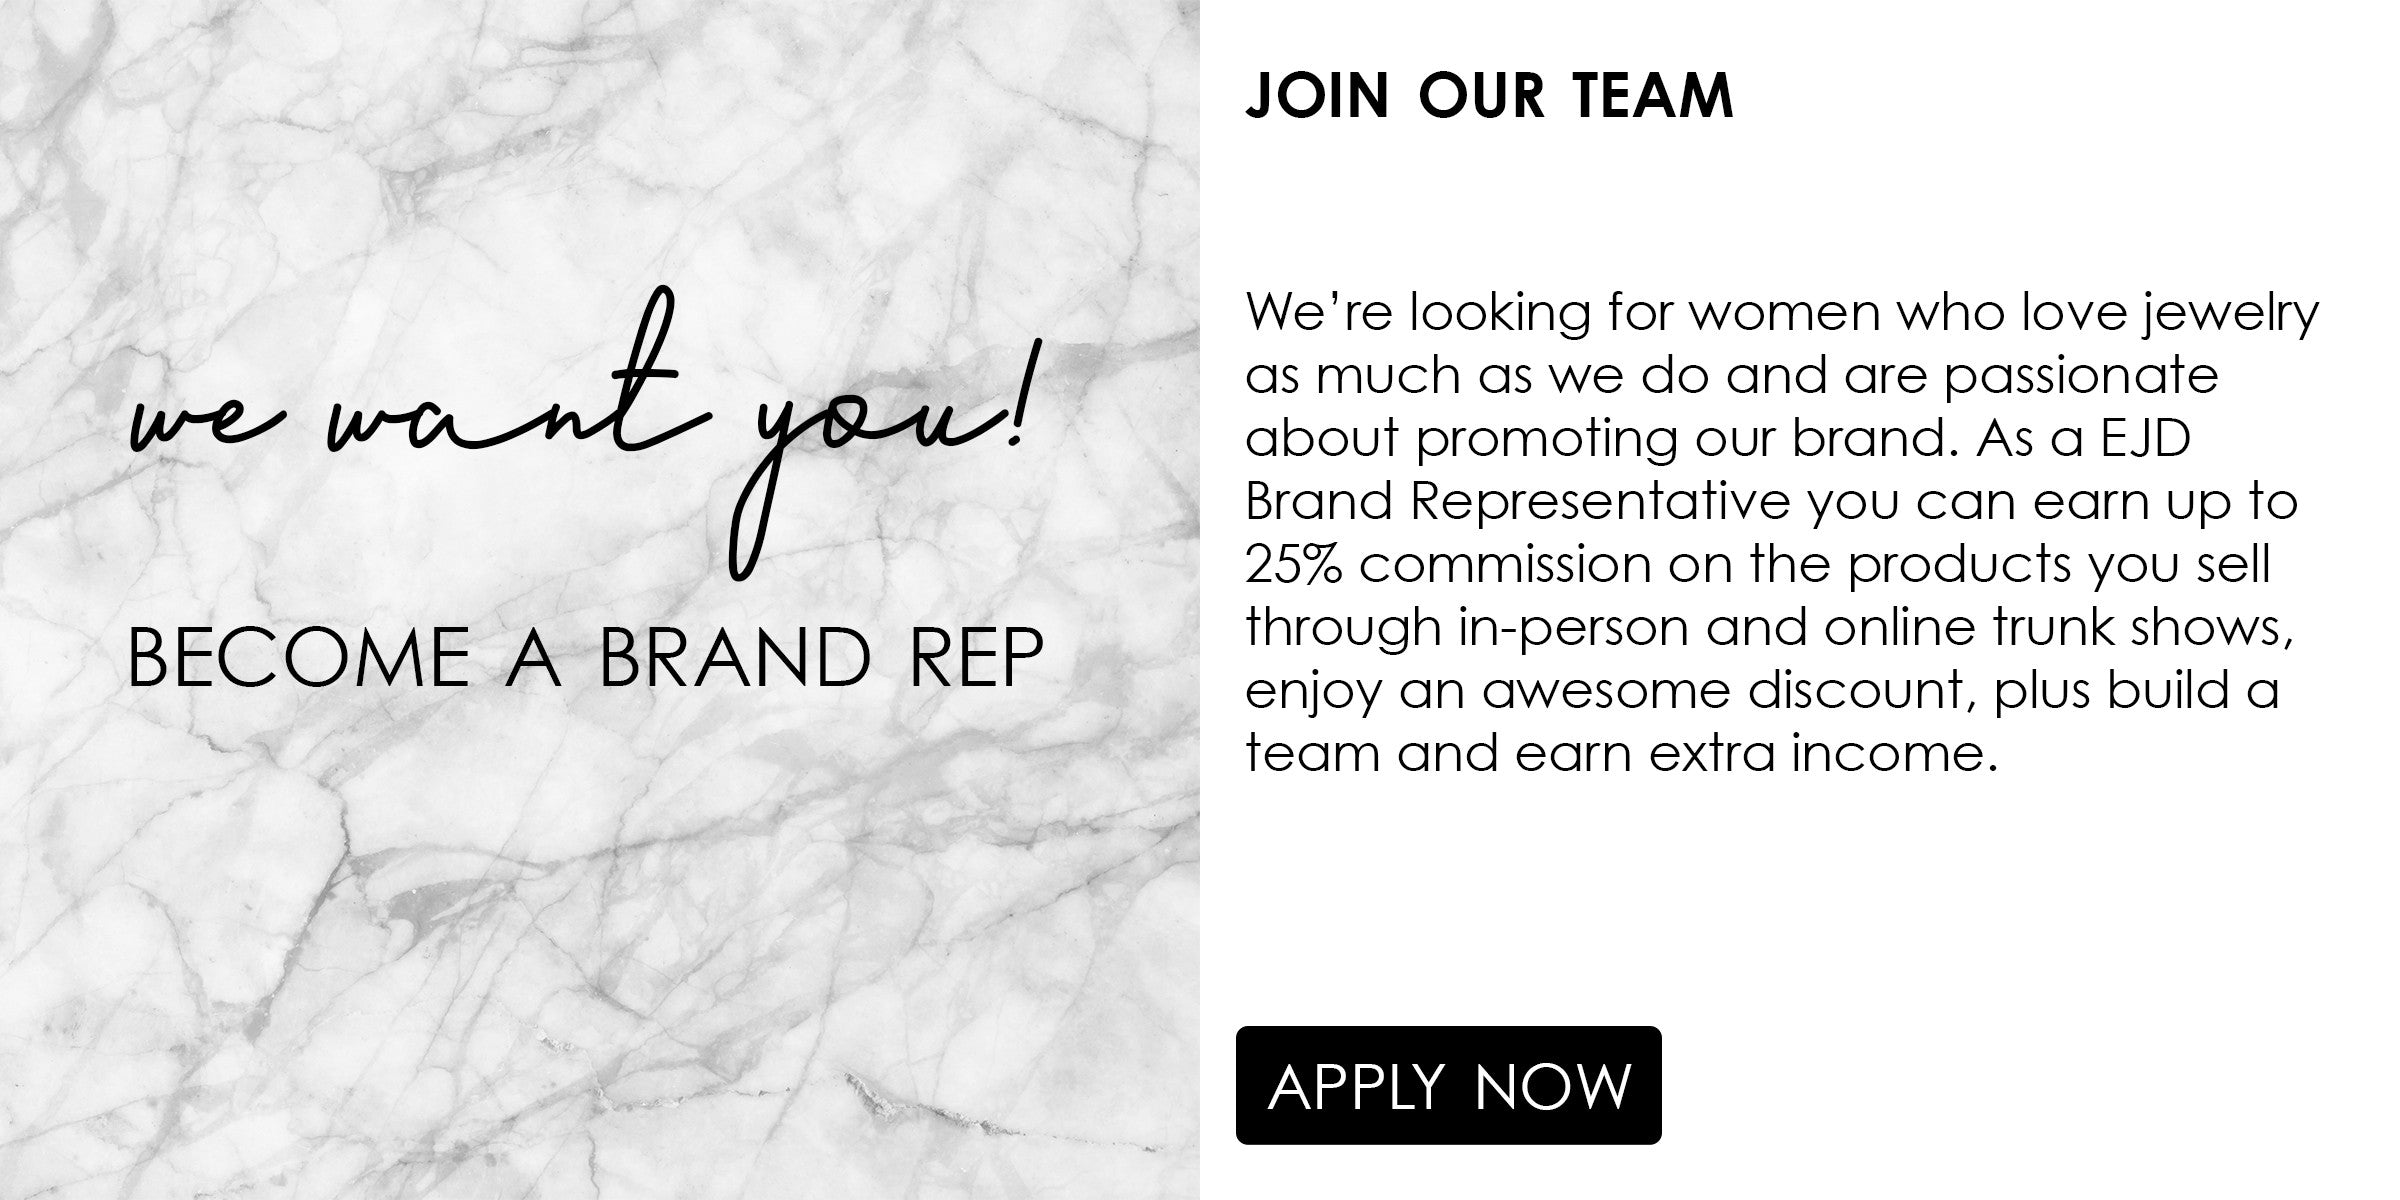 Become a Brand Rep